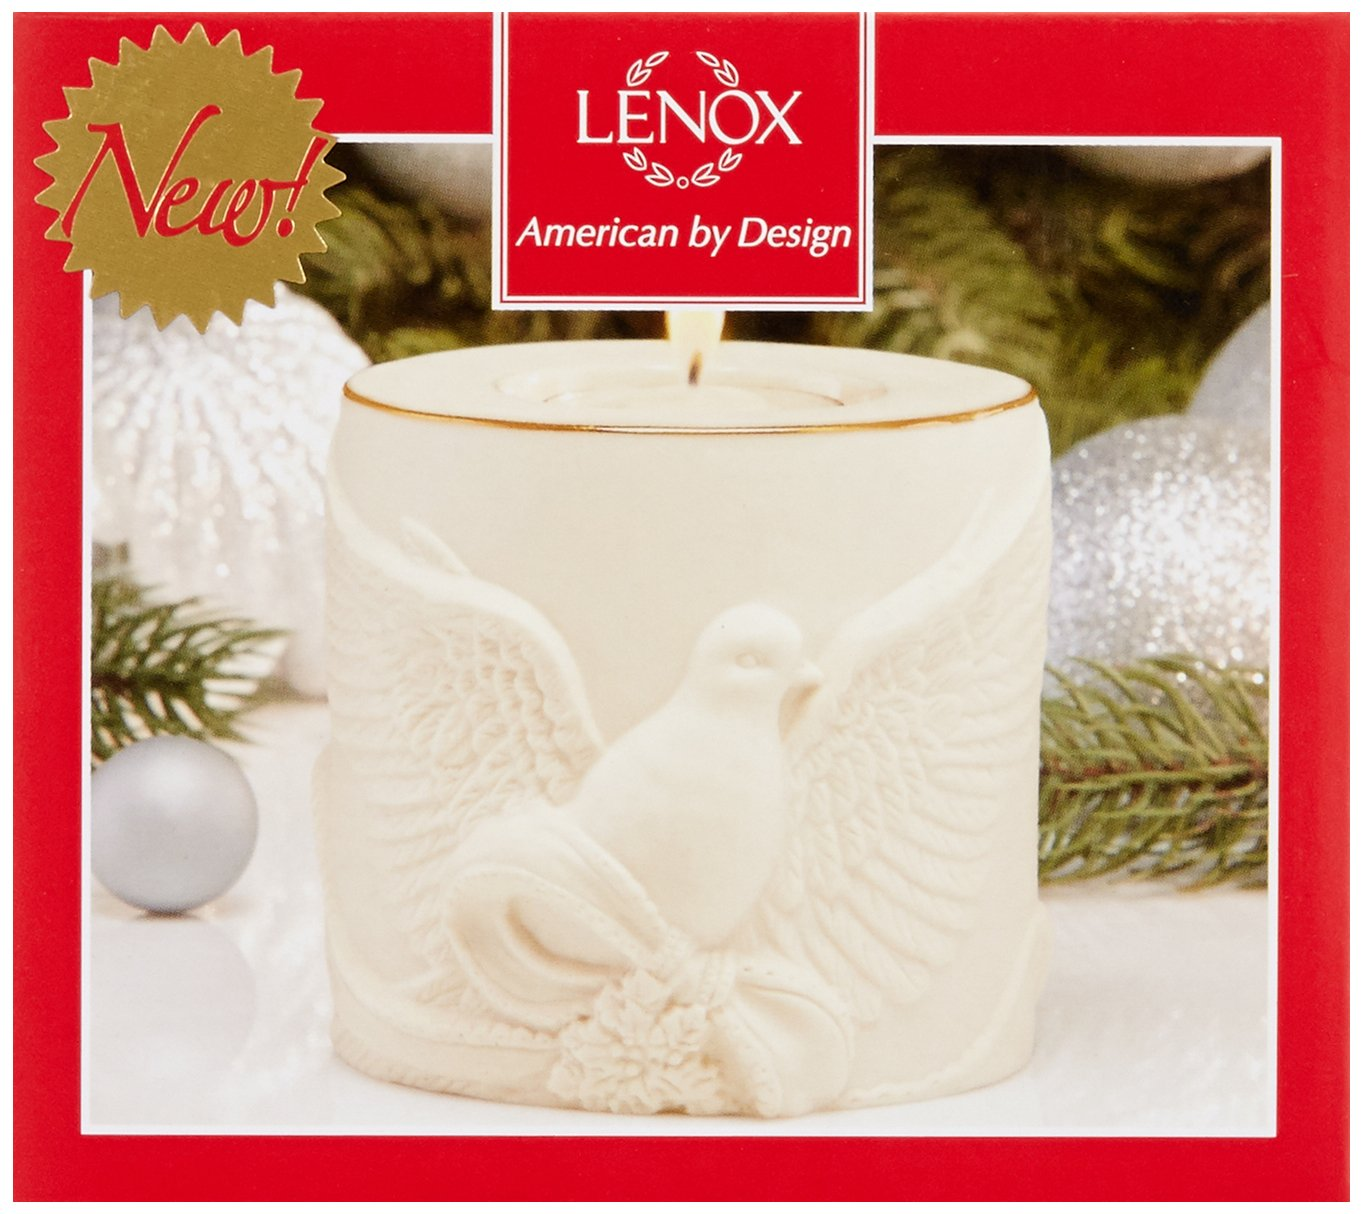 """Lenox Radiant Light Dove Votive - 3.25"""" D Crafted of Porcelain and Accented with 24K Gold For Decorative Use Only - living-room-decor, living-room, candles - 71yQSOxVCmL -"""